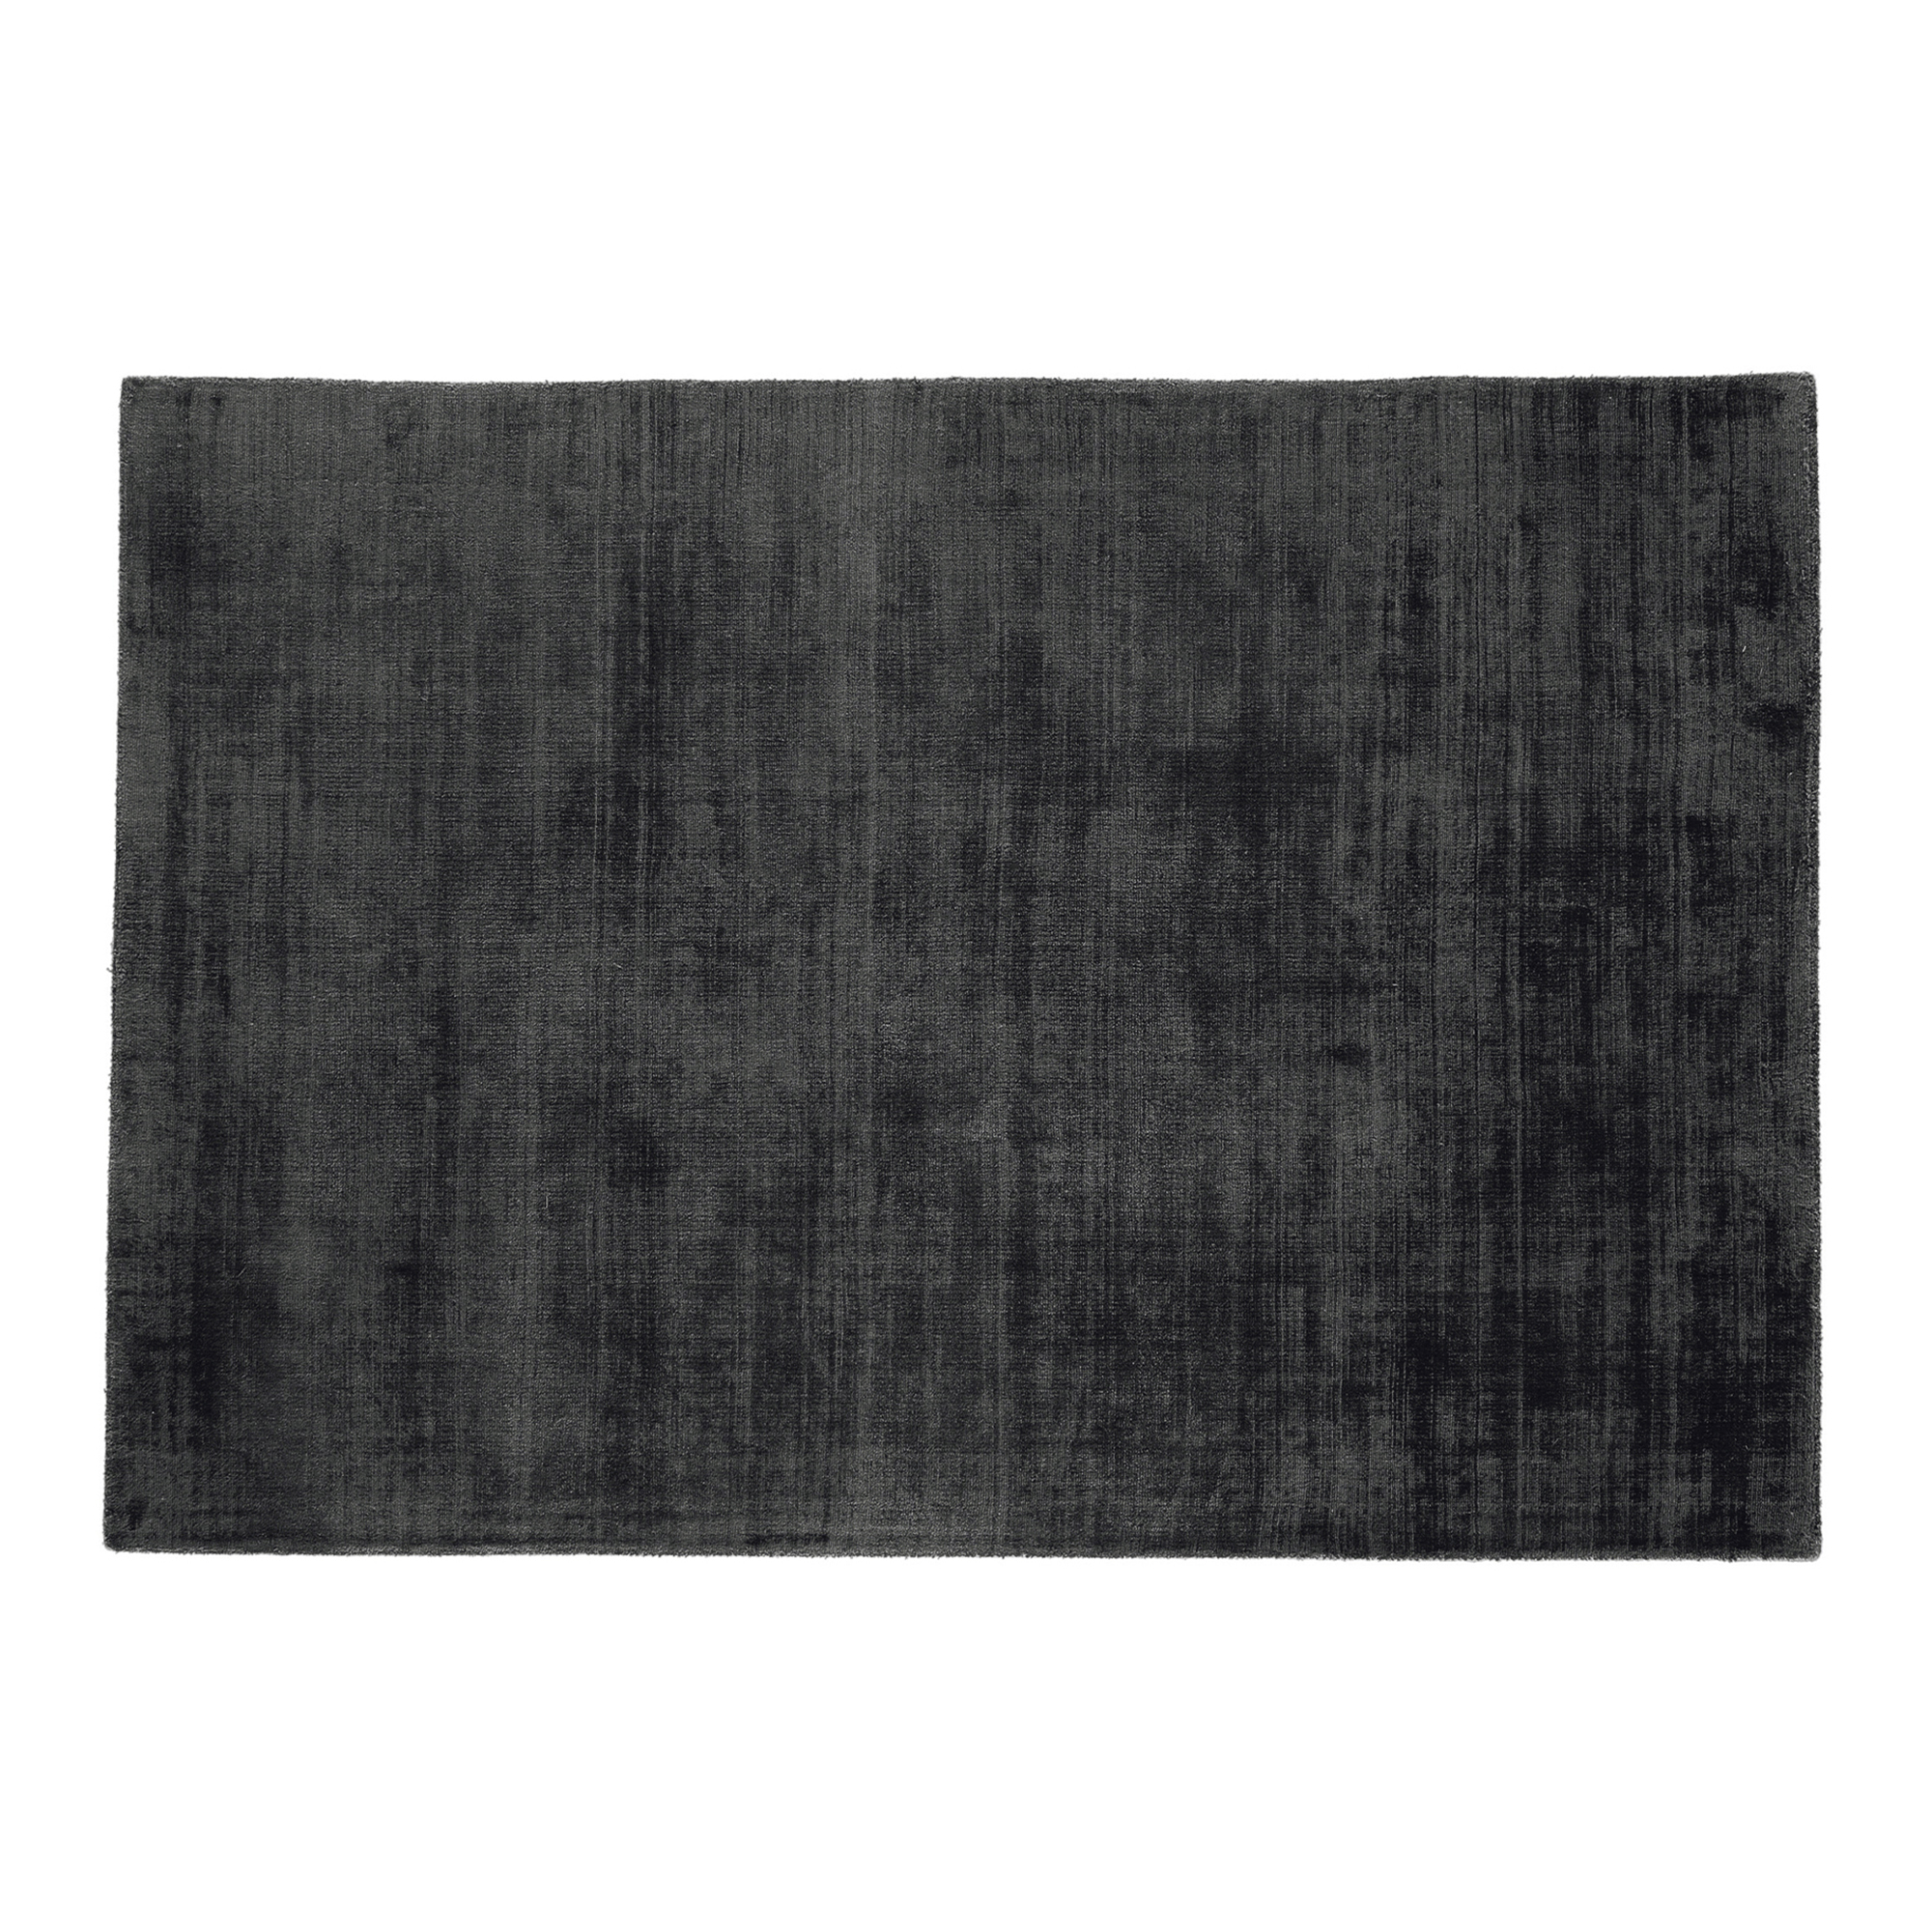 Blade Rug Charcoal All Rugs Fishpools